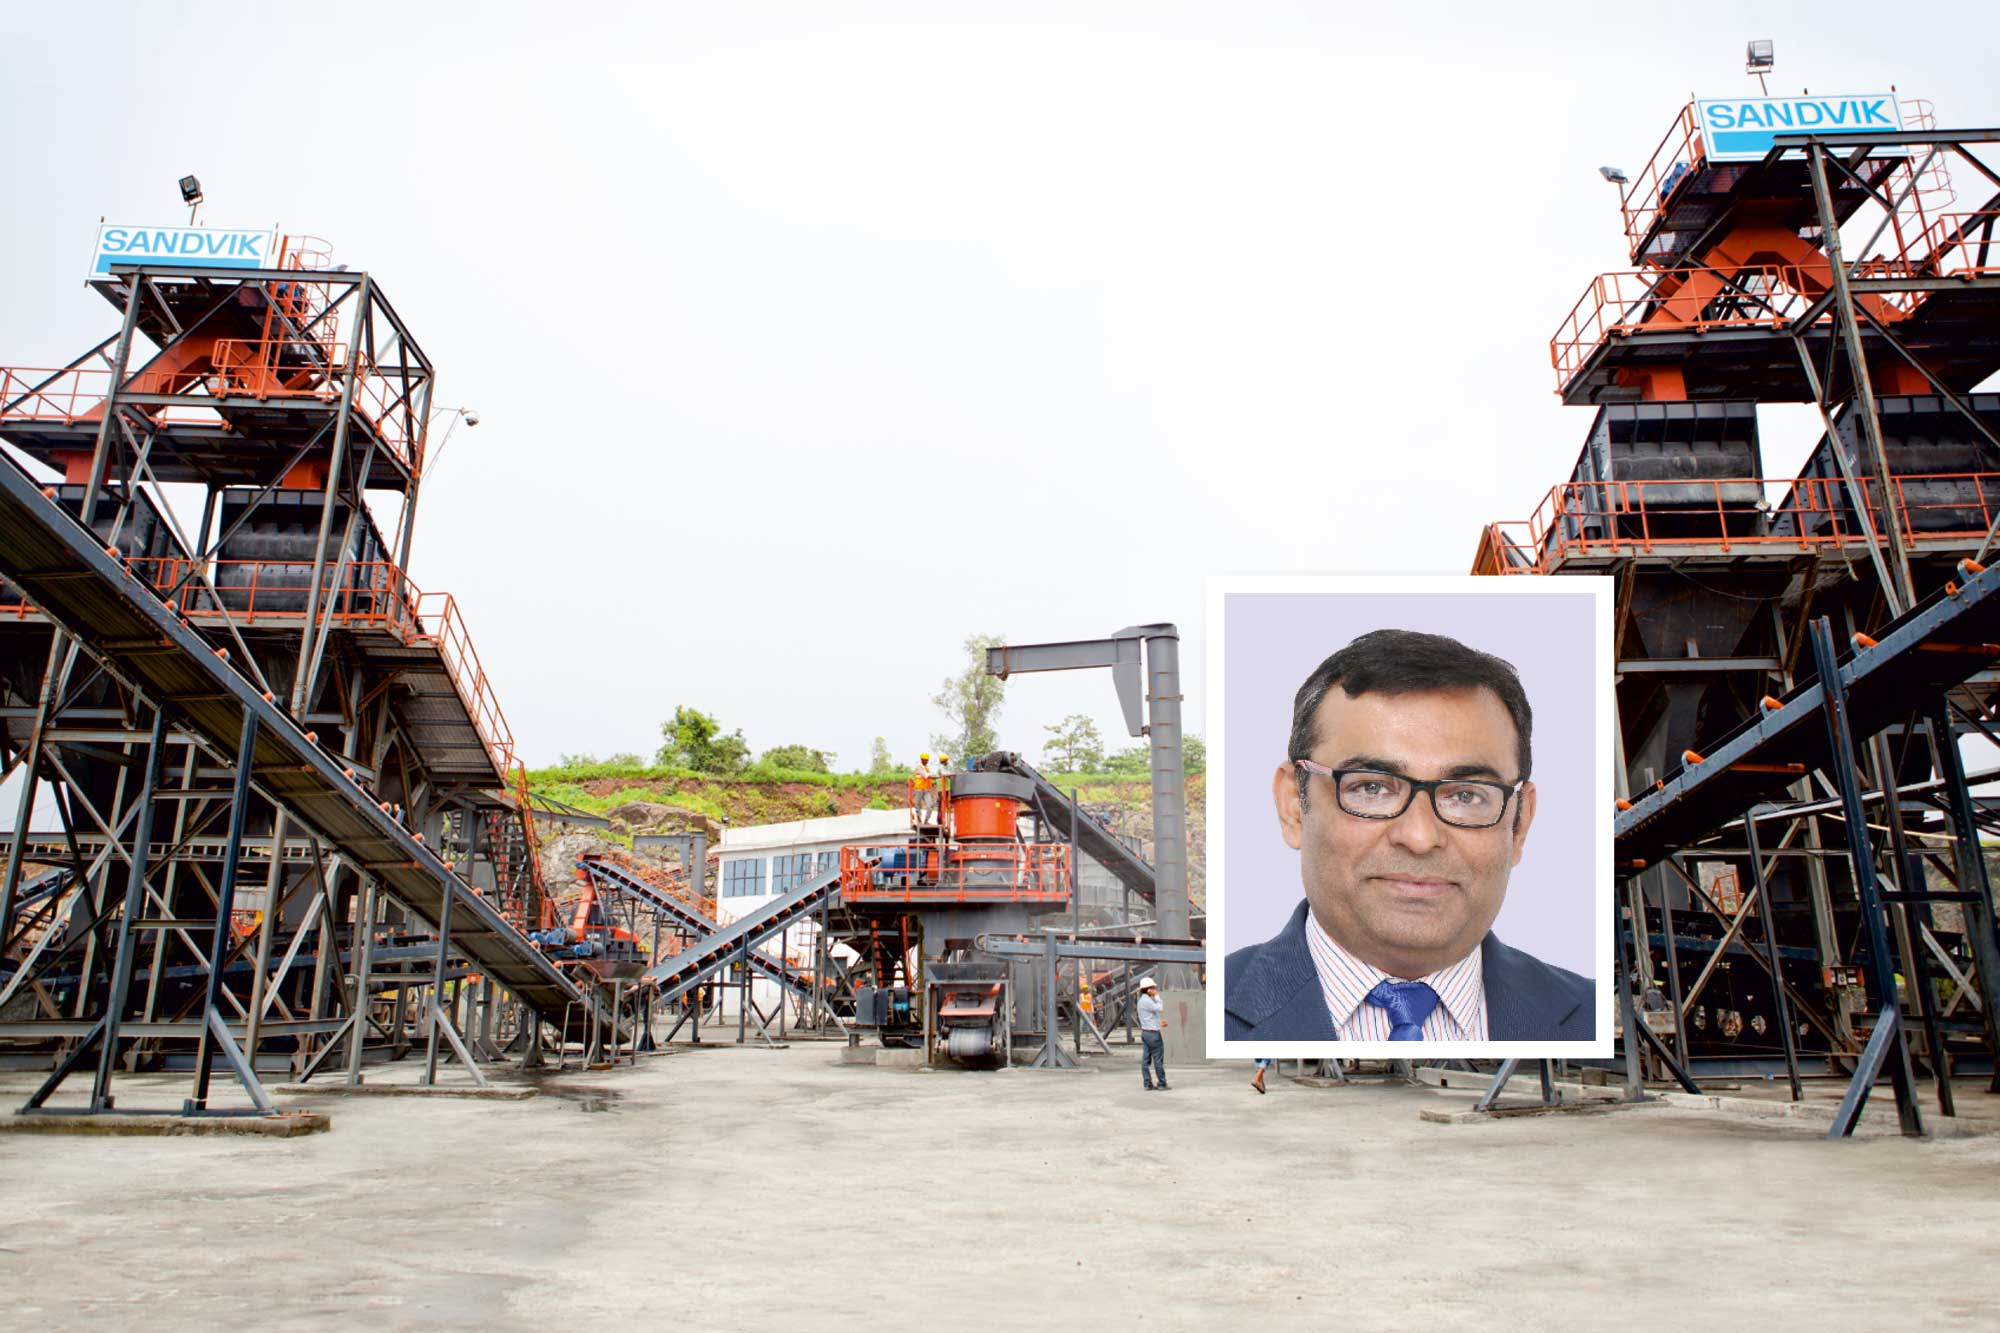 We deliver what we commit: Sandvik